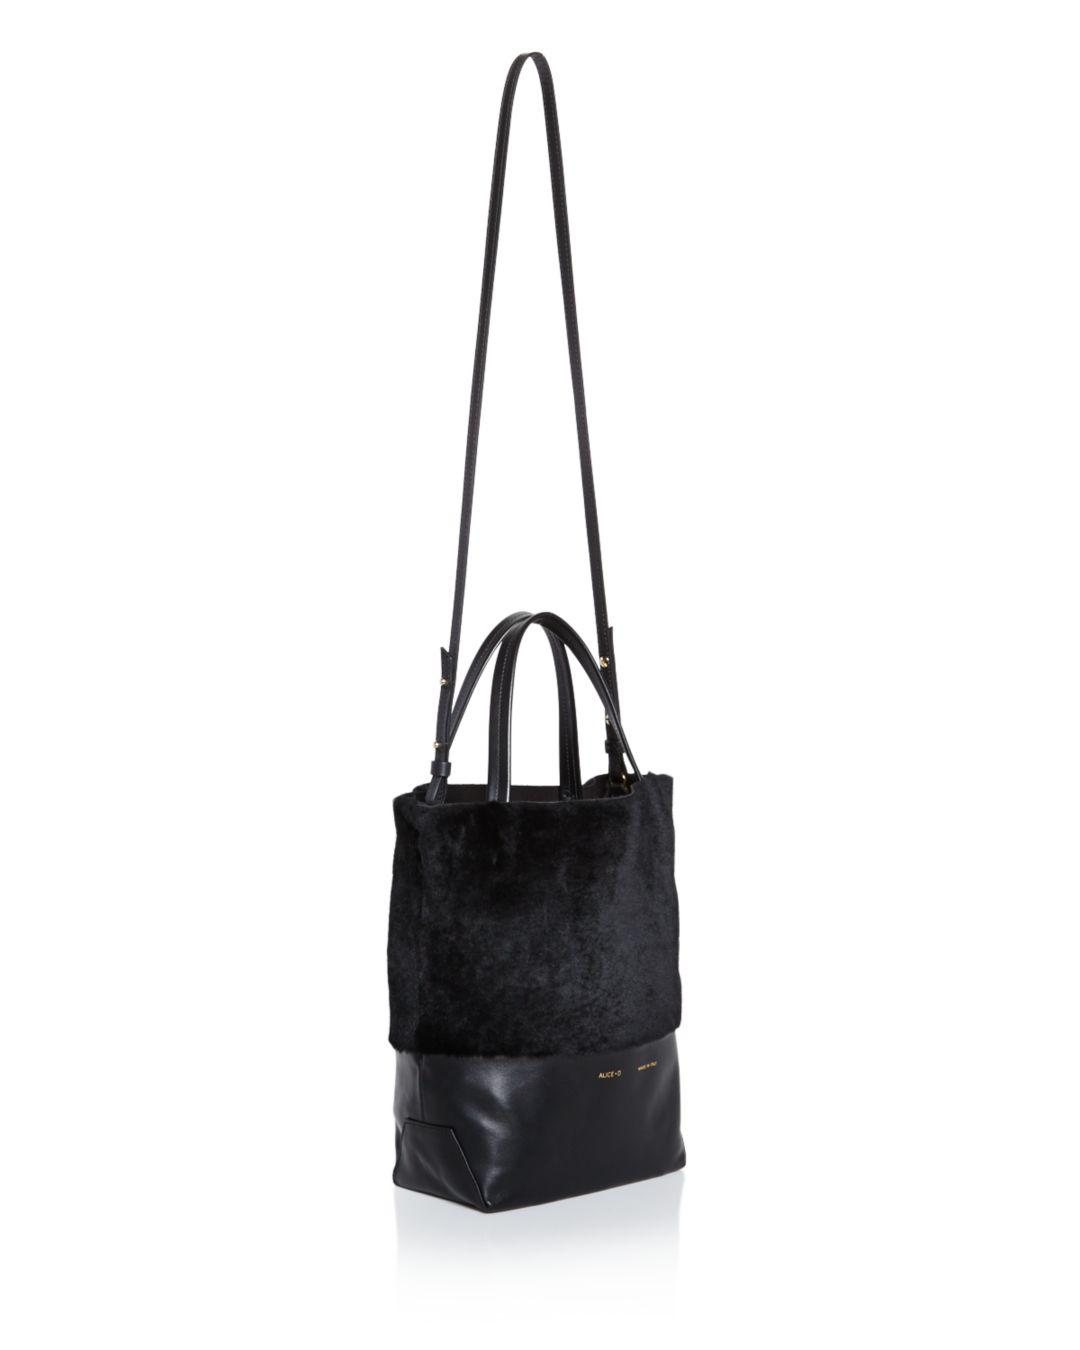 Alice.D Husky Small Shearling Tote in Black